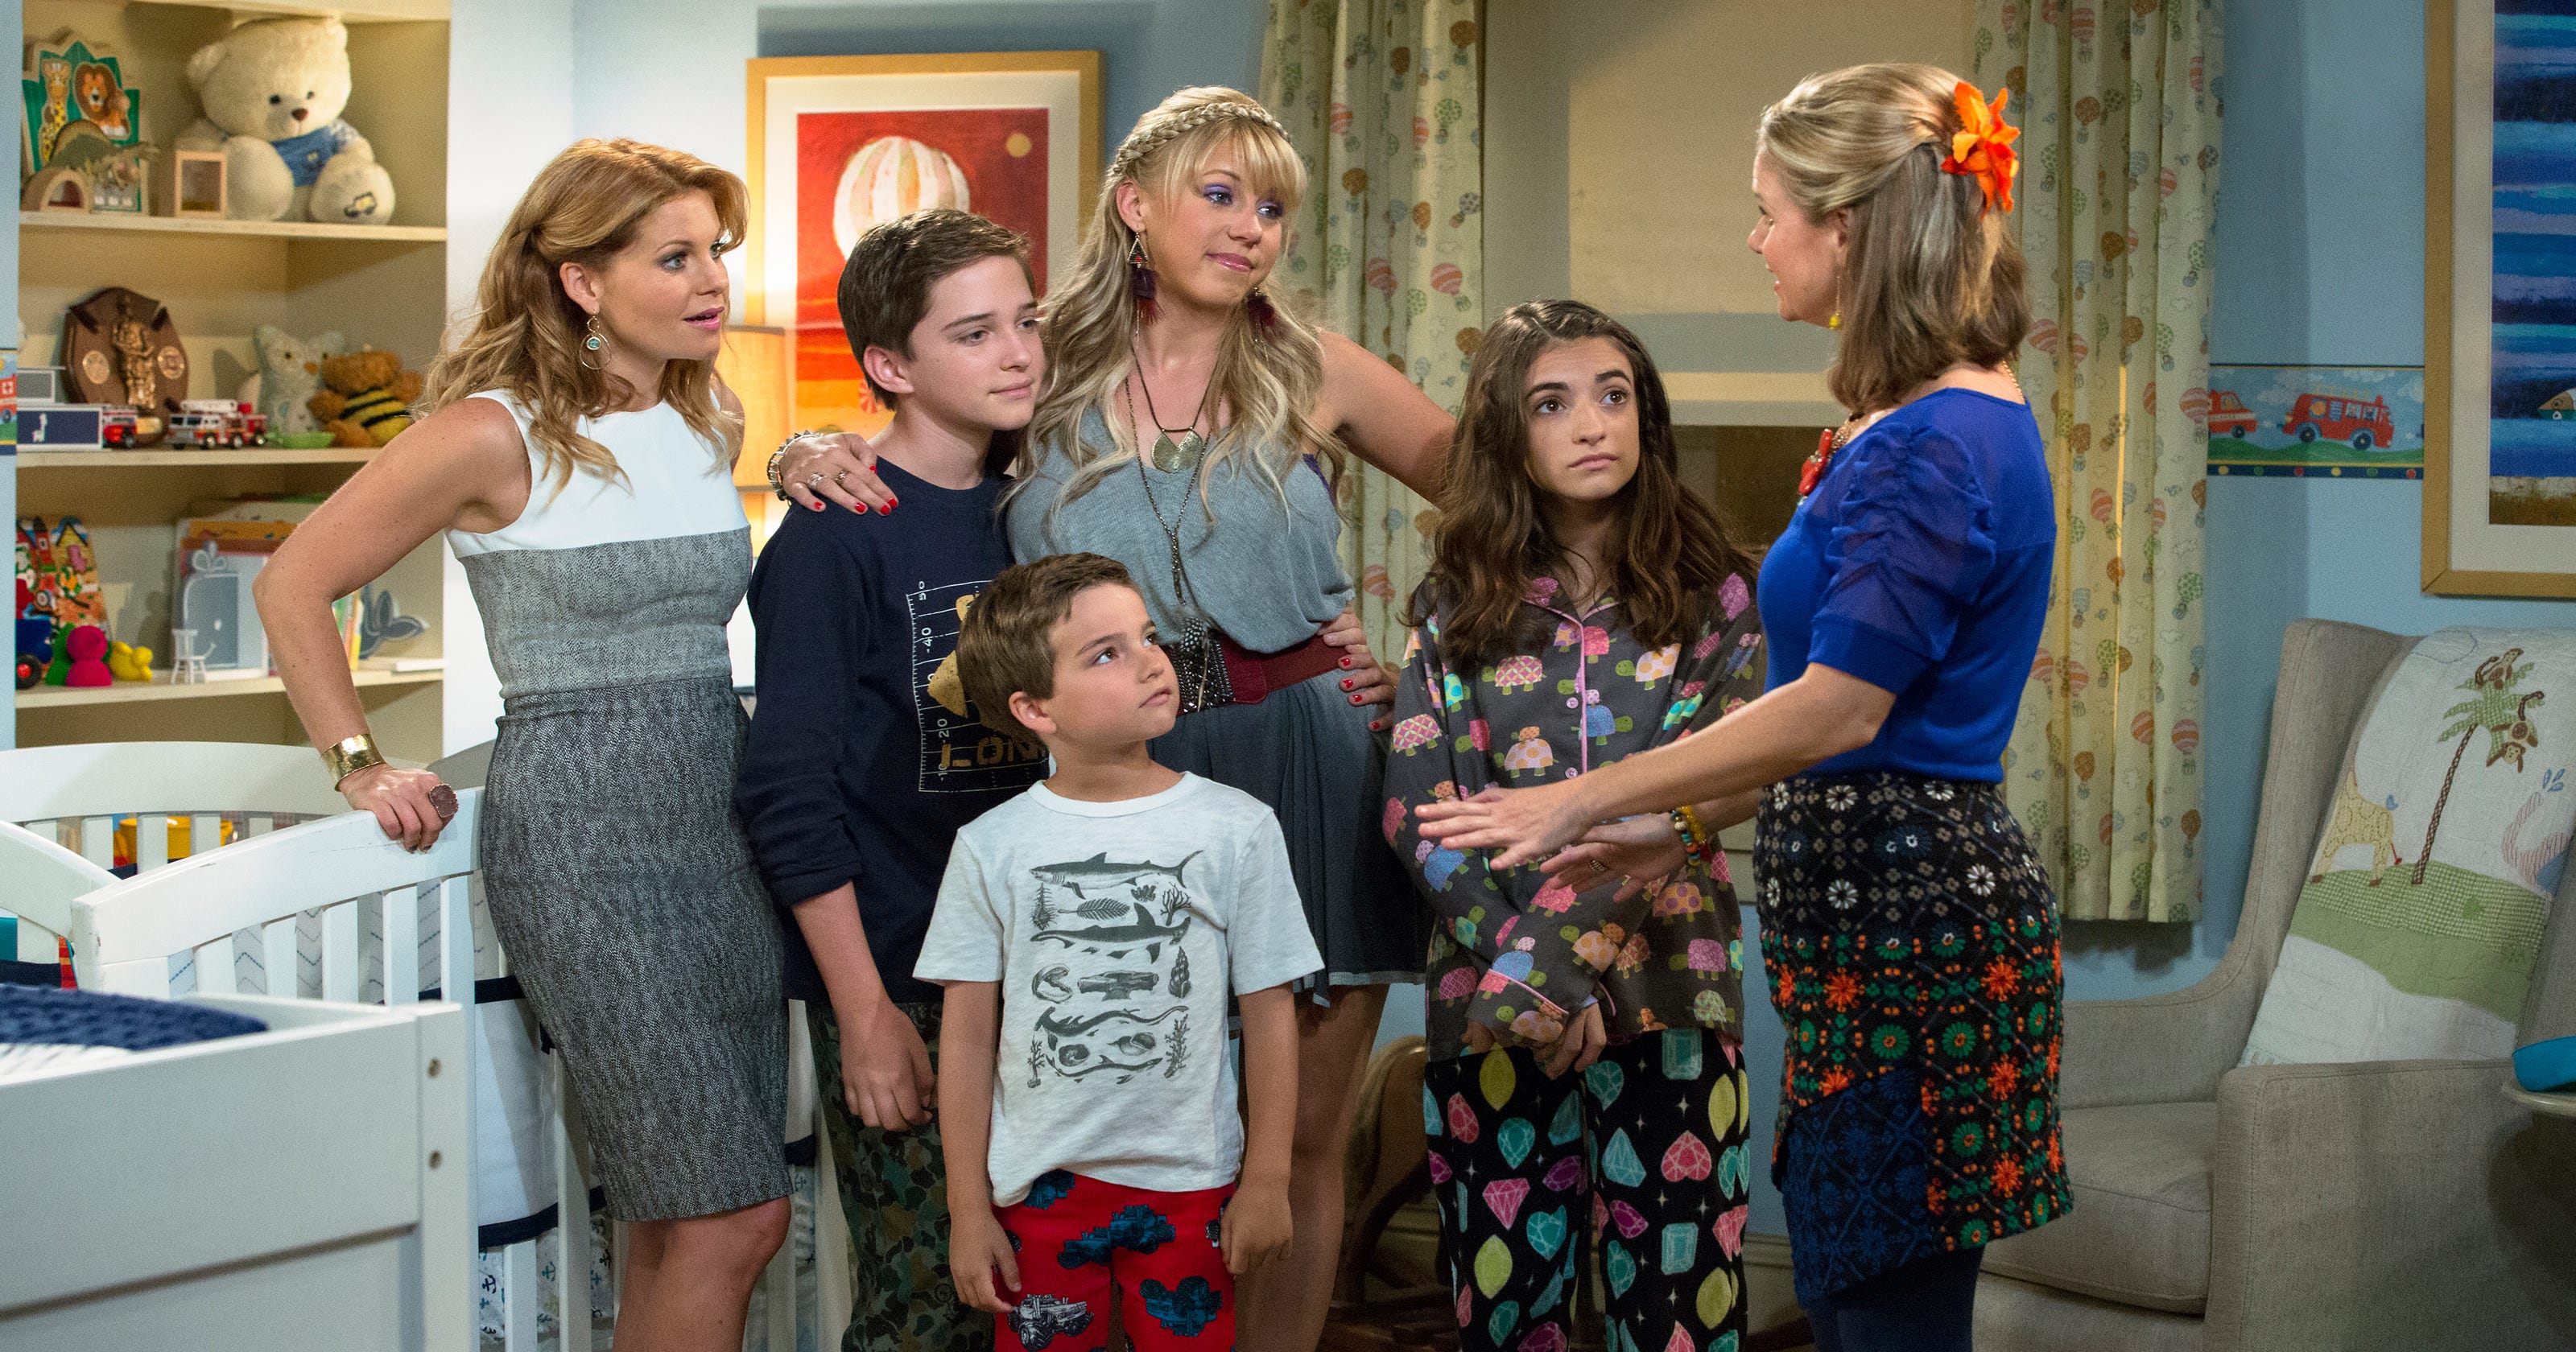 Fuller House' cast members are 'Everywhere You Look' in the new teaser